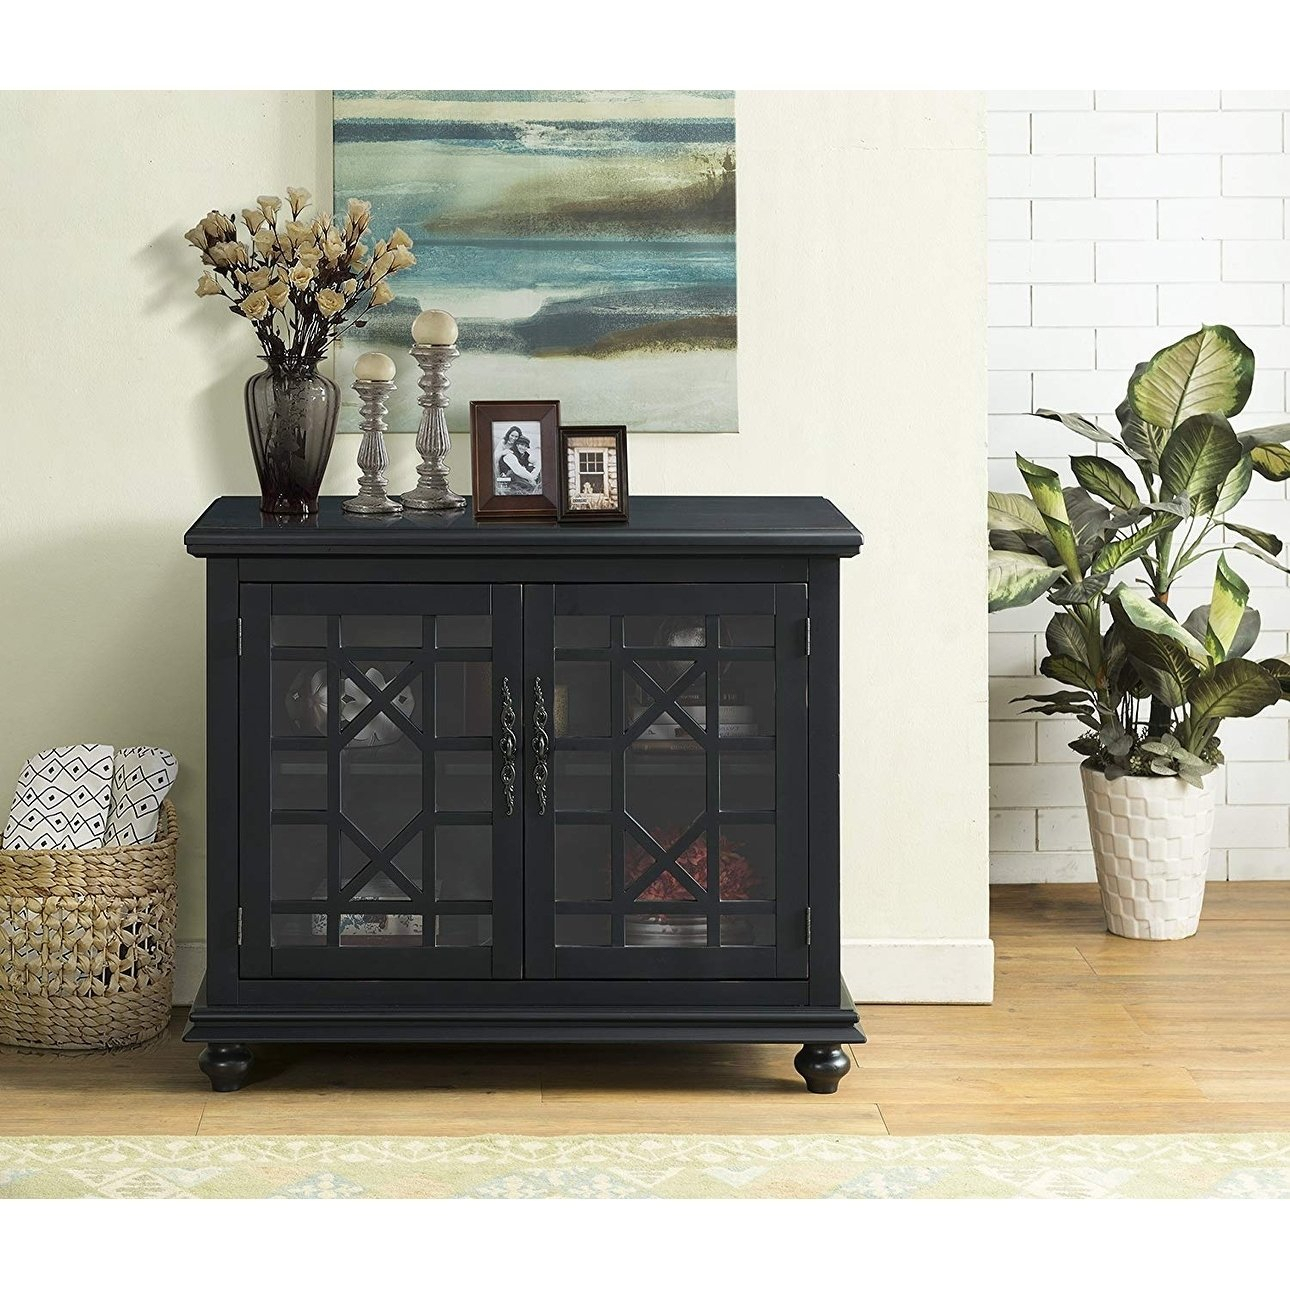 Shop Wooden Tv Stand With Trellis Detailed Doors, Antique Black In Maddy 60 Inch Tv Stands (View 9 of 30)